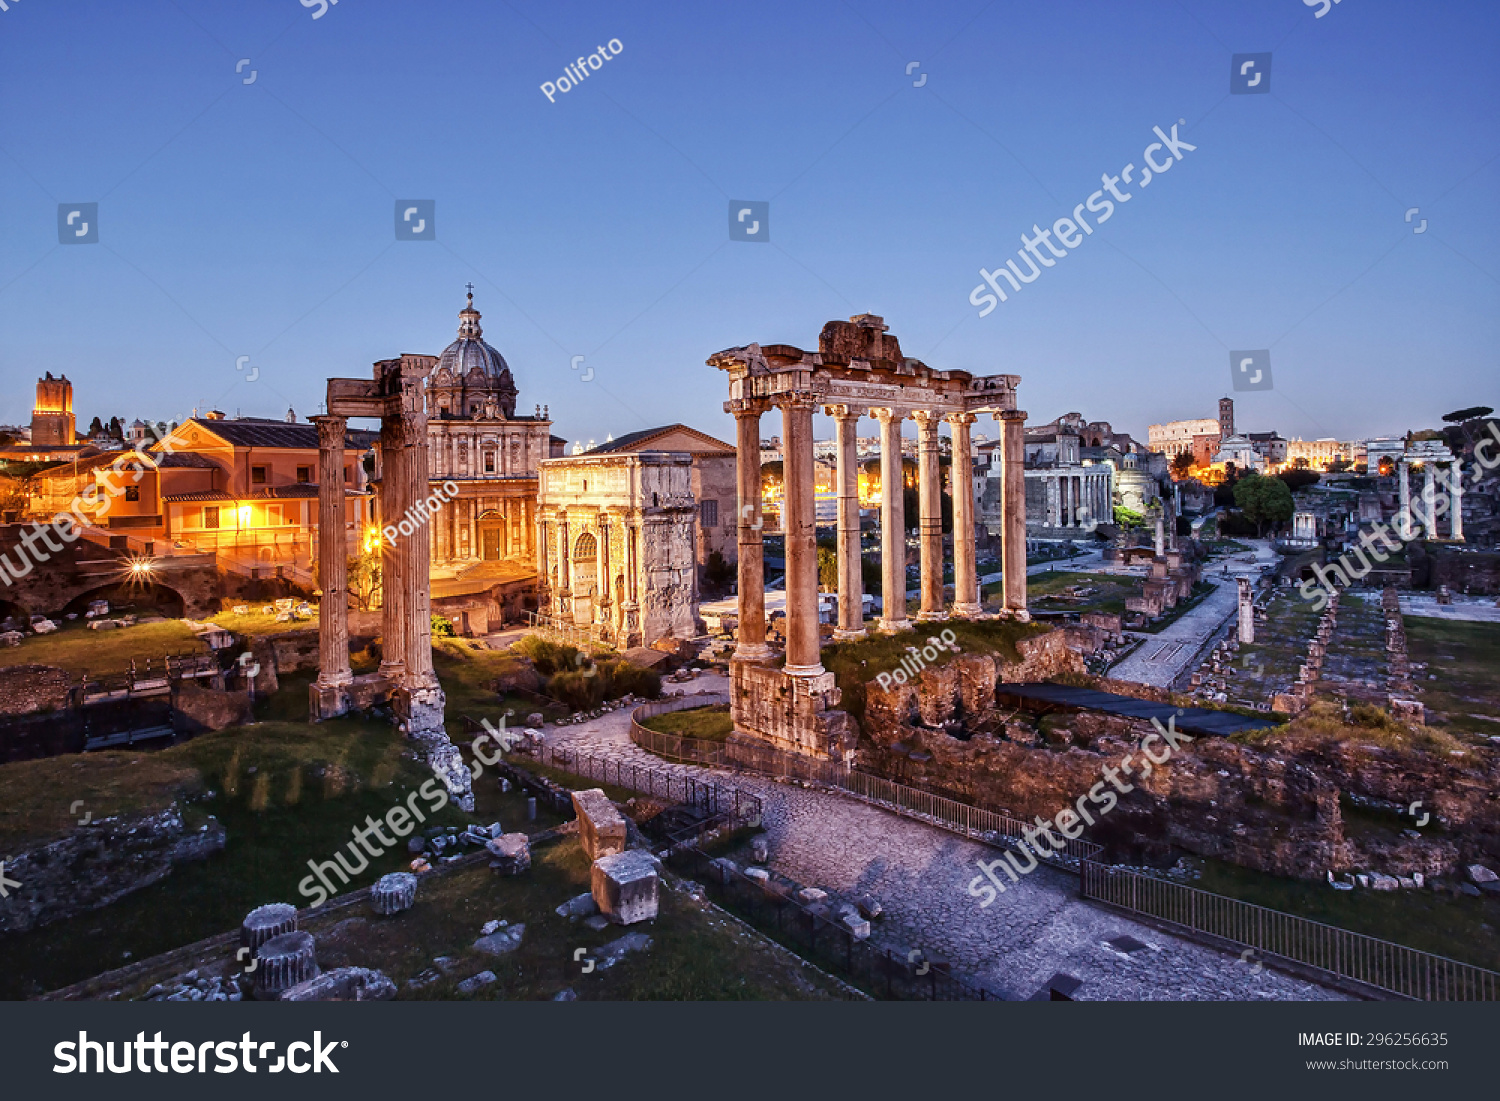 The Roman Forum photographed at sunset with artificial lights on